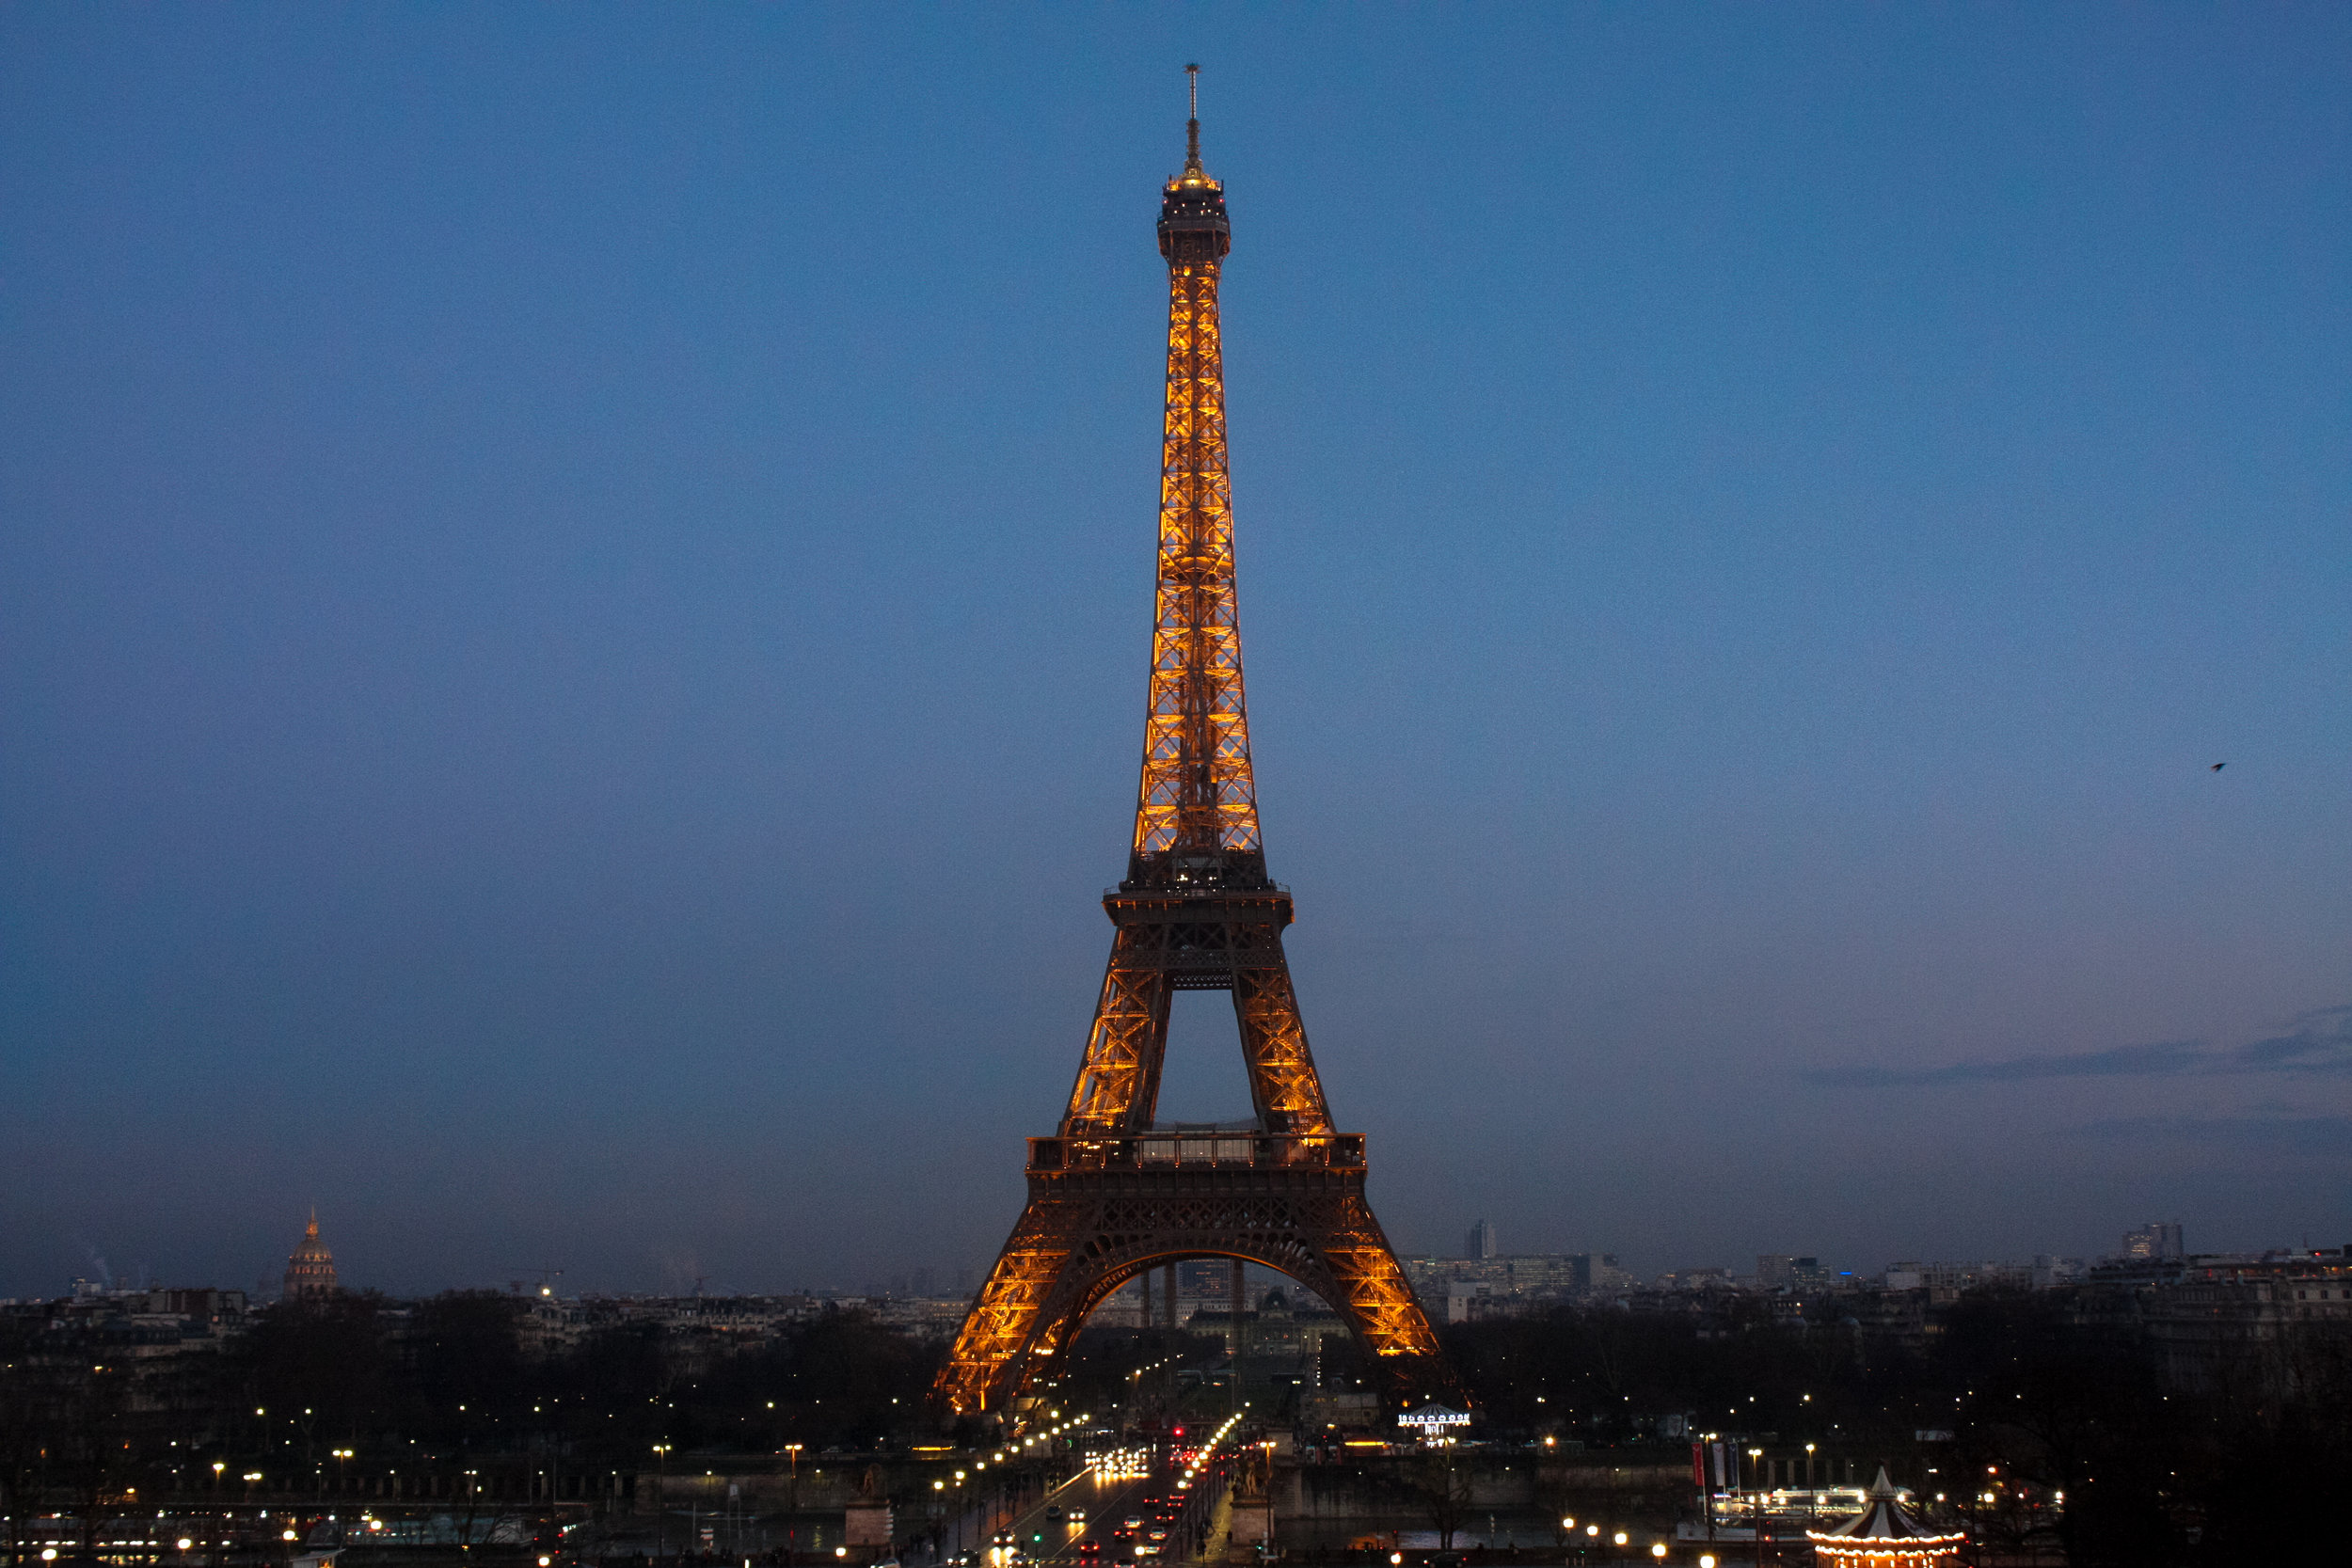 eiffel tower paris @rebeccaplotnick